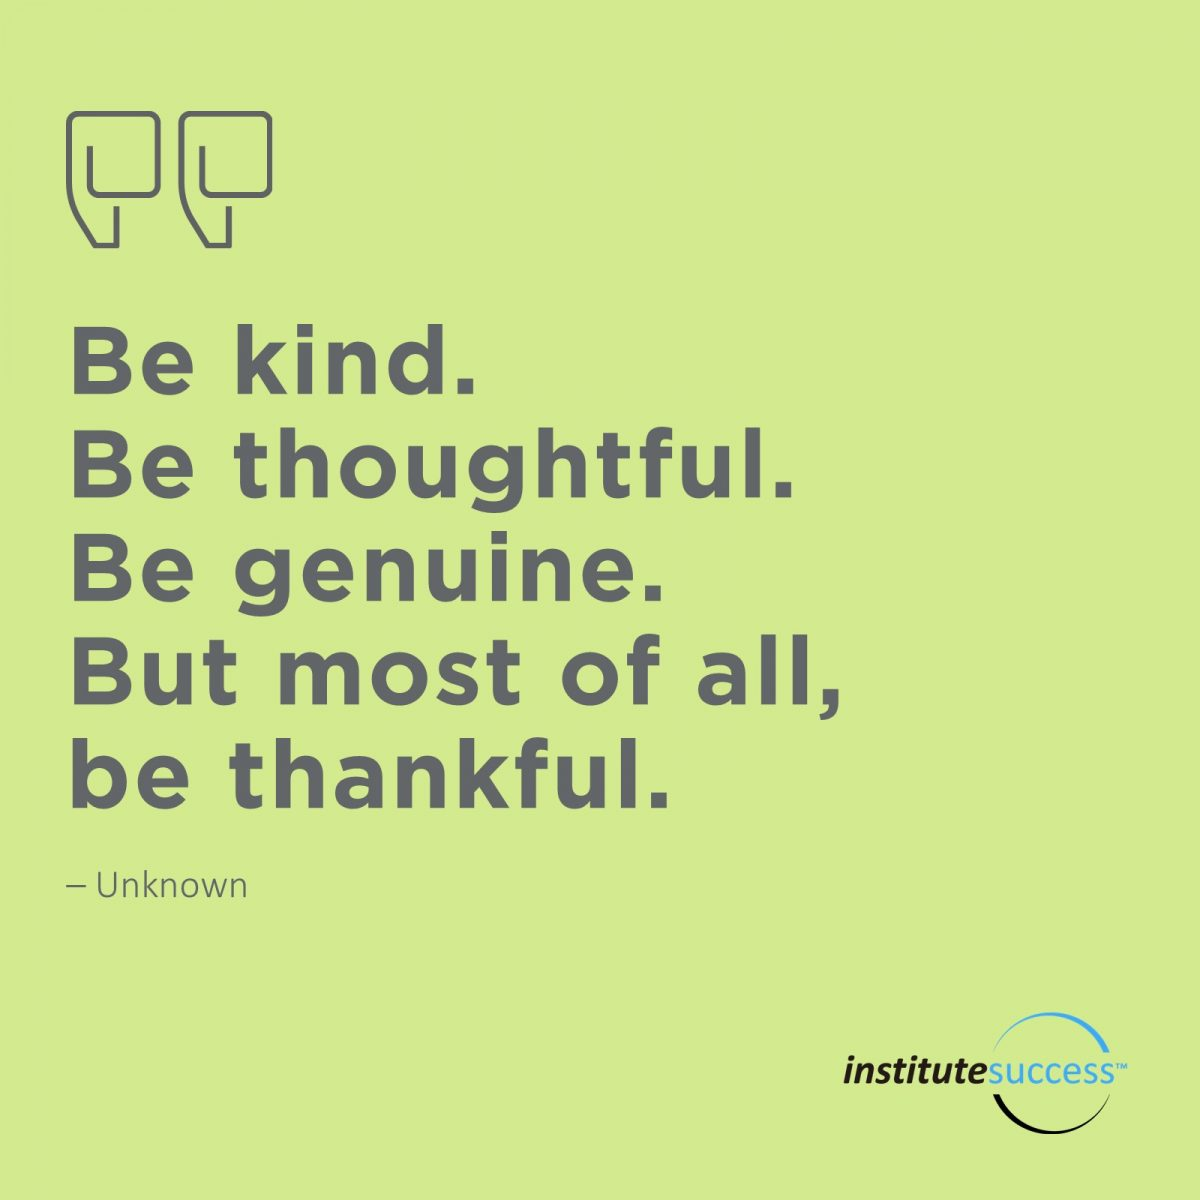 Be kind. Be thoughtful. Be genuine. But most of all, be thankful. Unknown